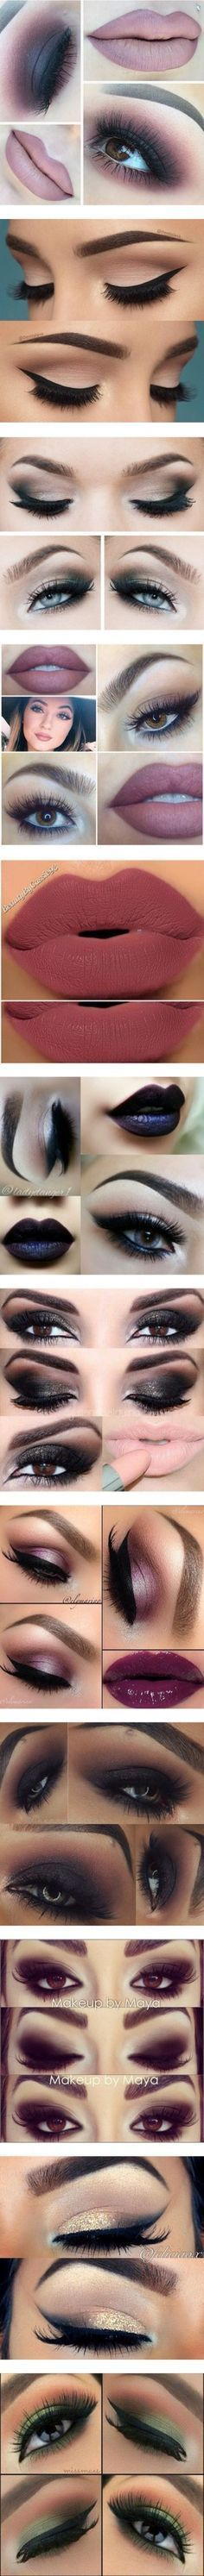 Makeup Part 2 by belabmilagres on Polyvore featuring beauty products makeup lips beauty eyes eye makeup eyeliner make lumiere makeup and lumiere cosmetics